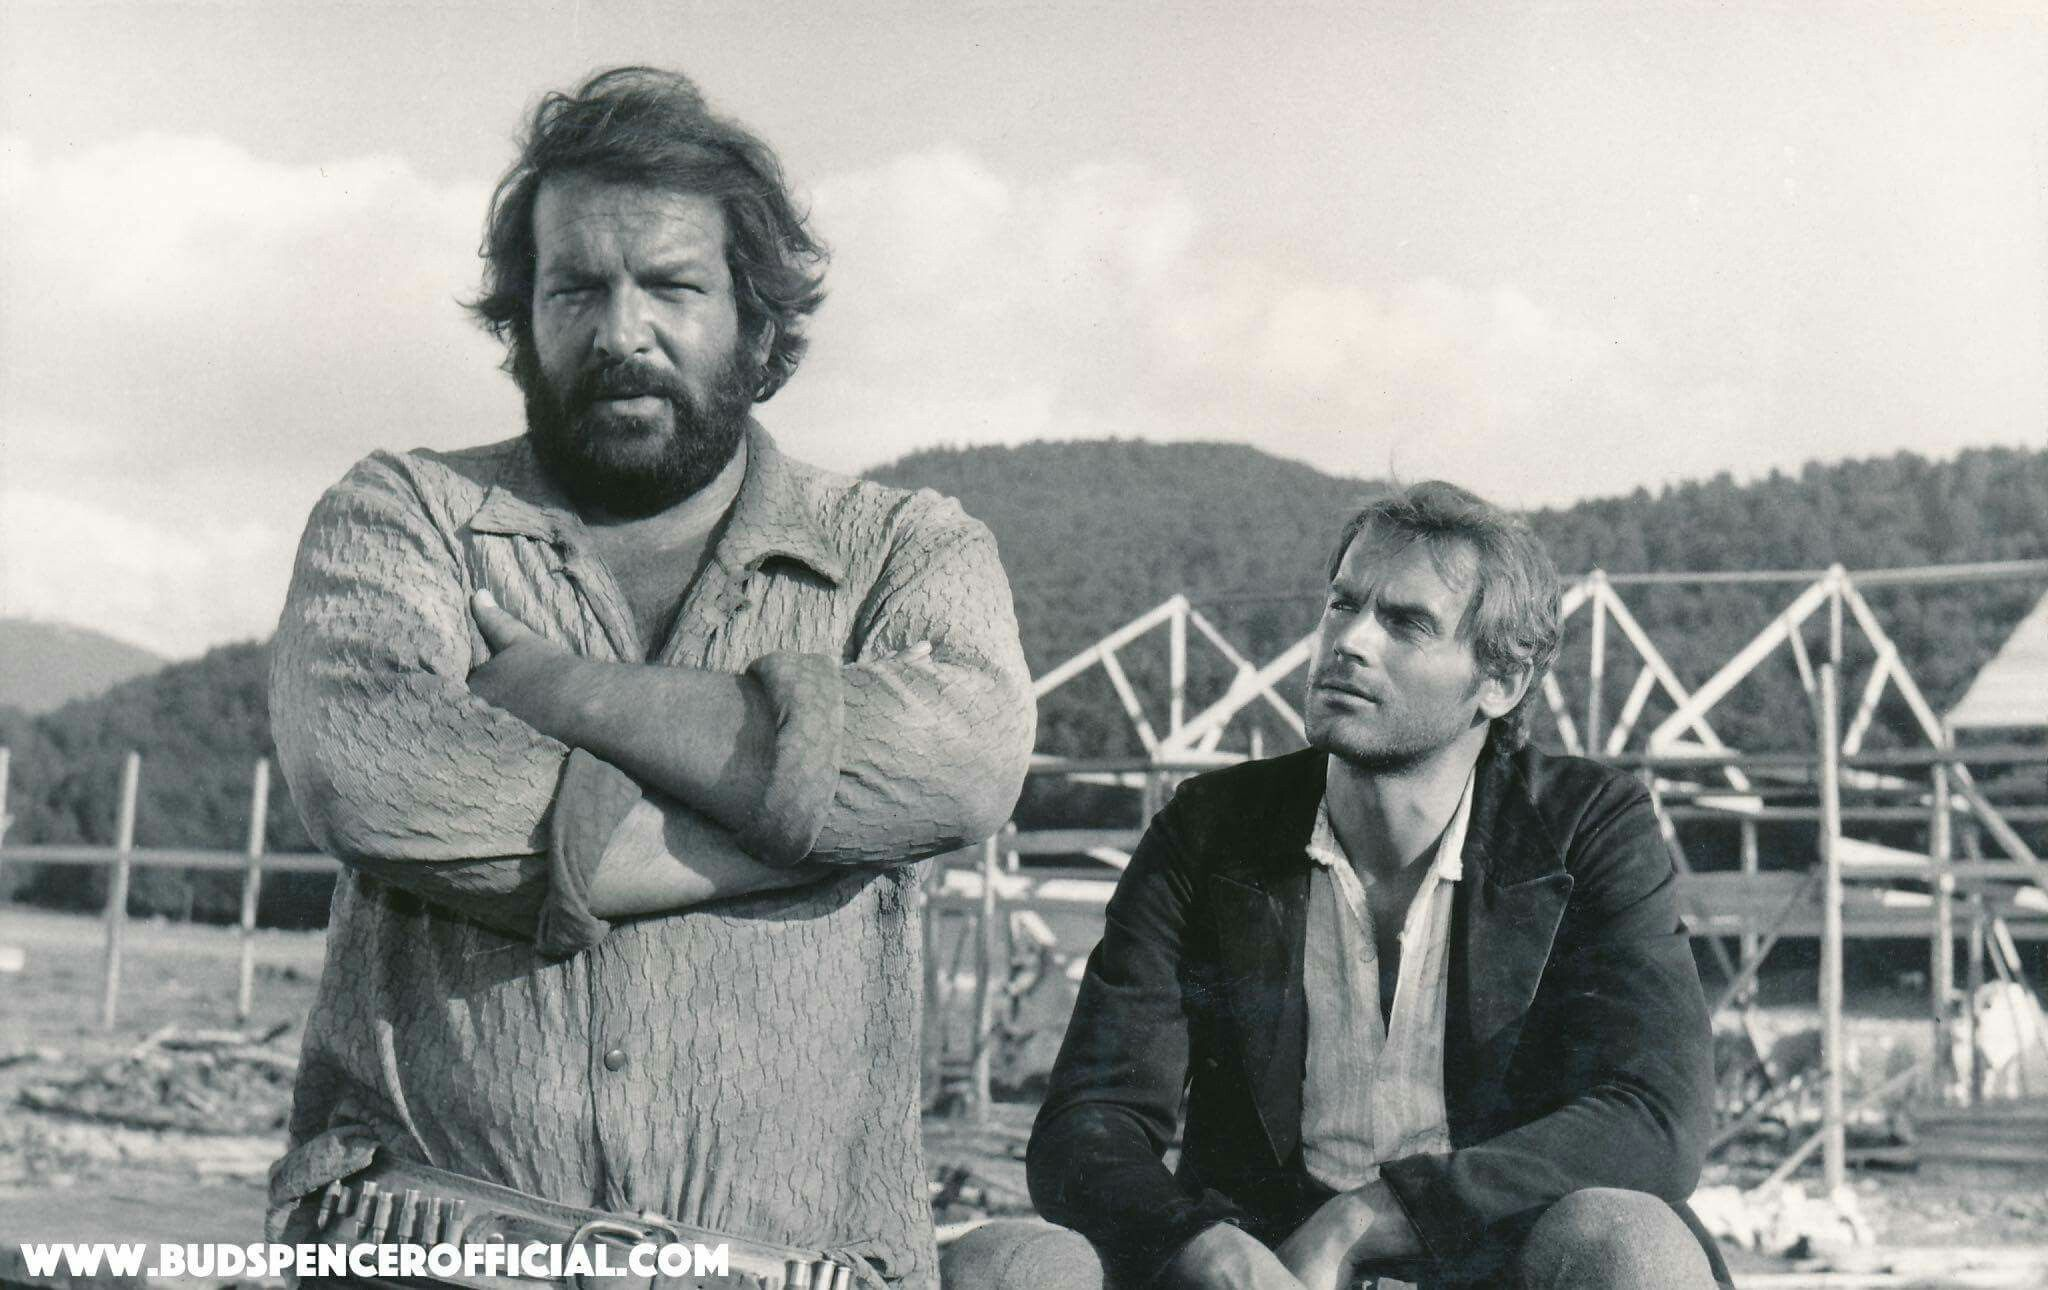 Filmes Bud Spencer E Terence Hill Dublado intended for pinbethsheba trapp on bud spencer and terence hill | pinterest